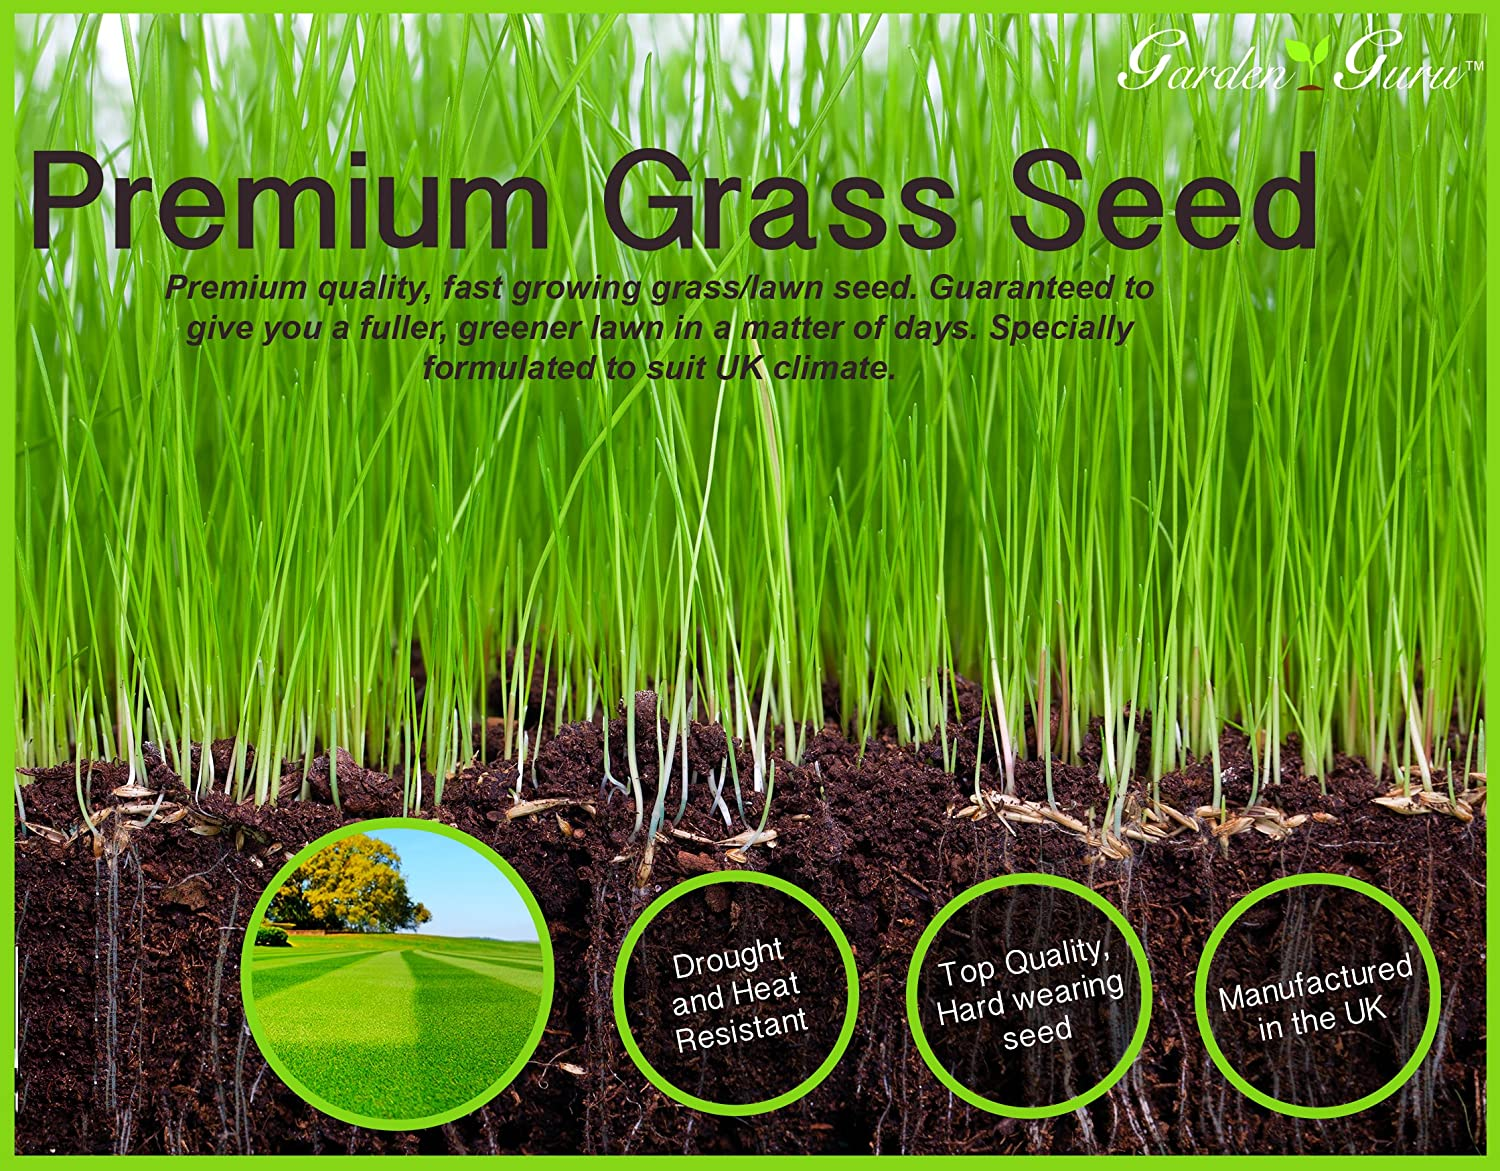 New Garden Guru 2kg Highest Quality Grass Seed Our Lawn Seed Covers Upto  70sqm For A New Lawn And 110sqm For An Established Lawn Garden Guru Grass  Seed Is